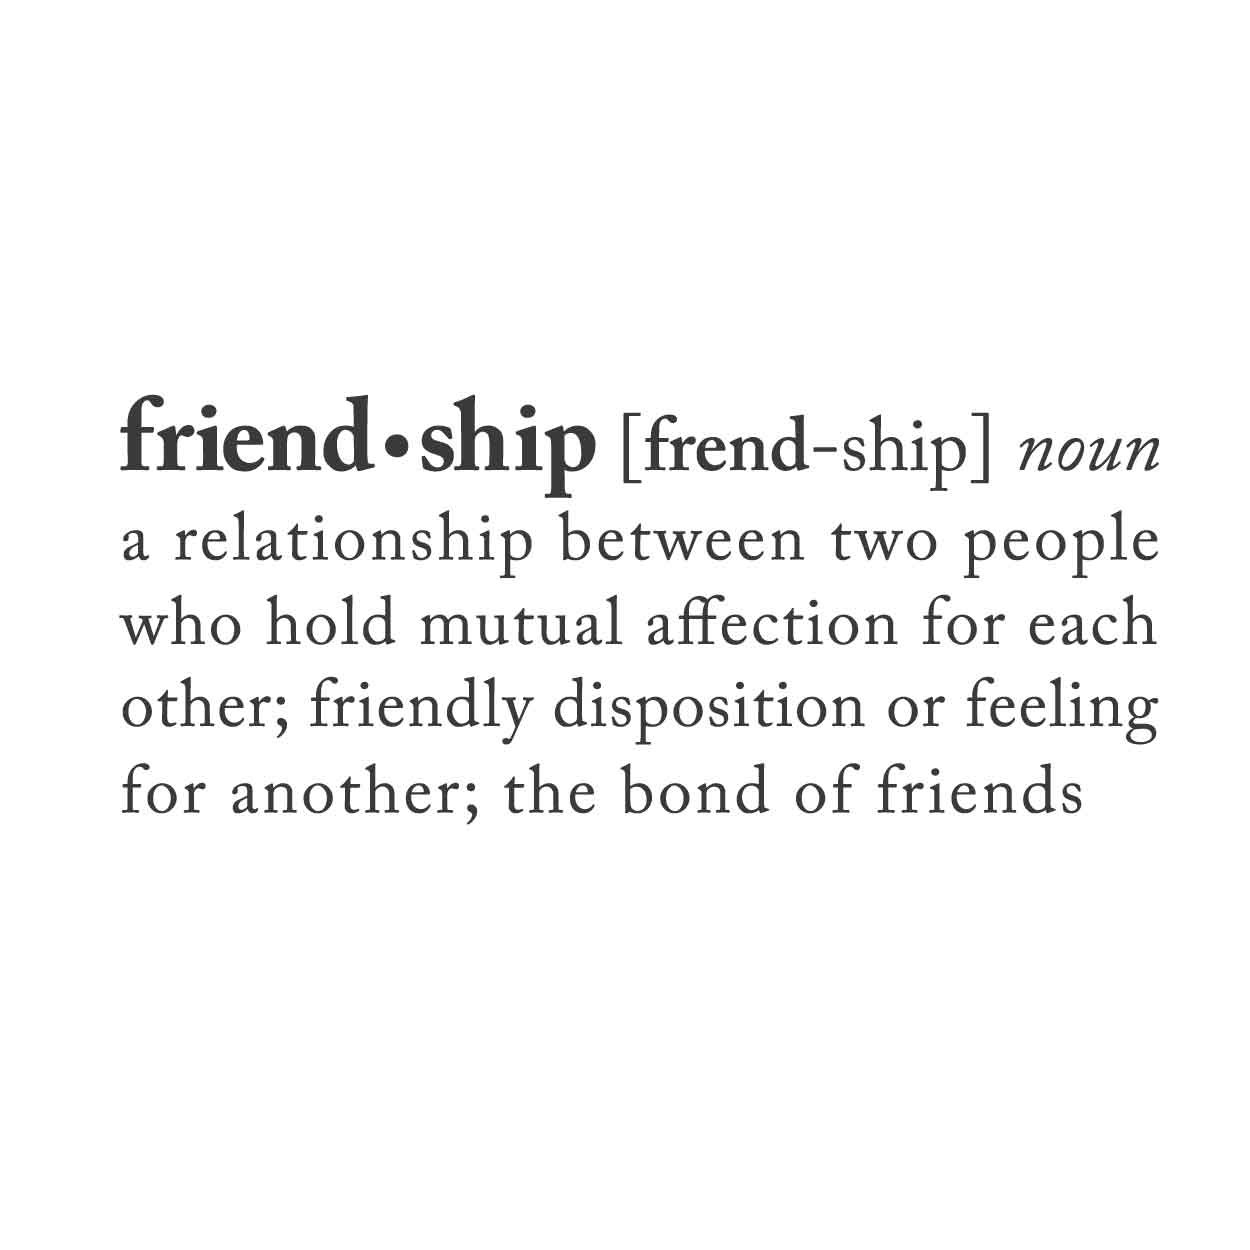 essays definition friendship